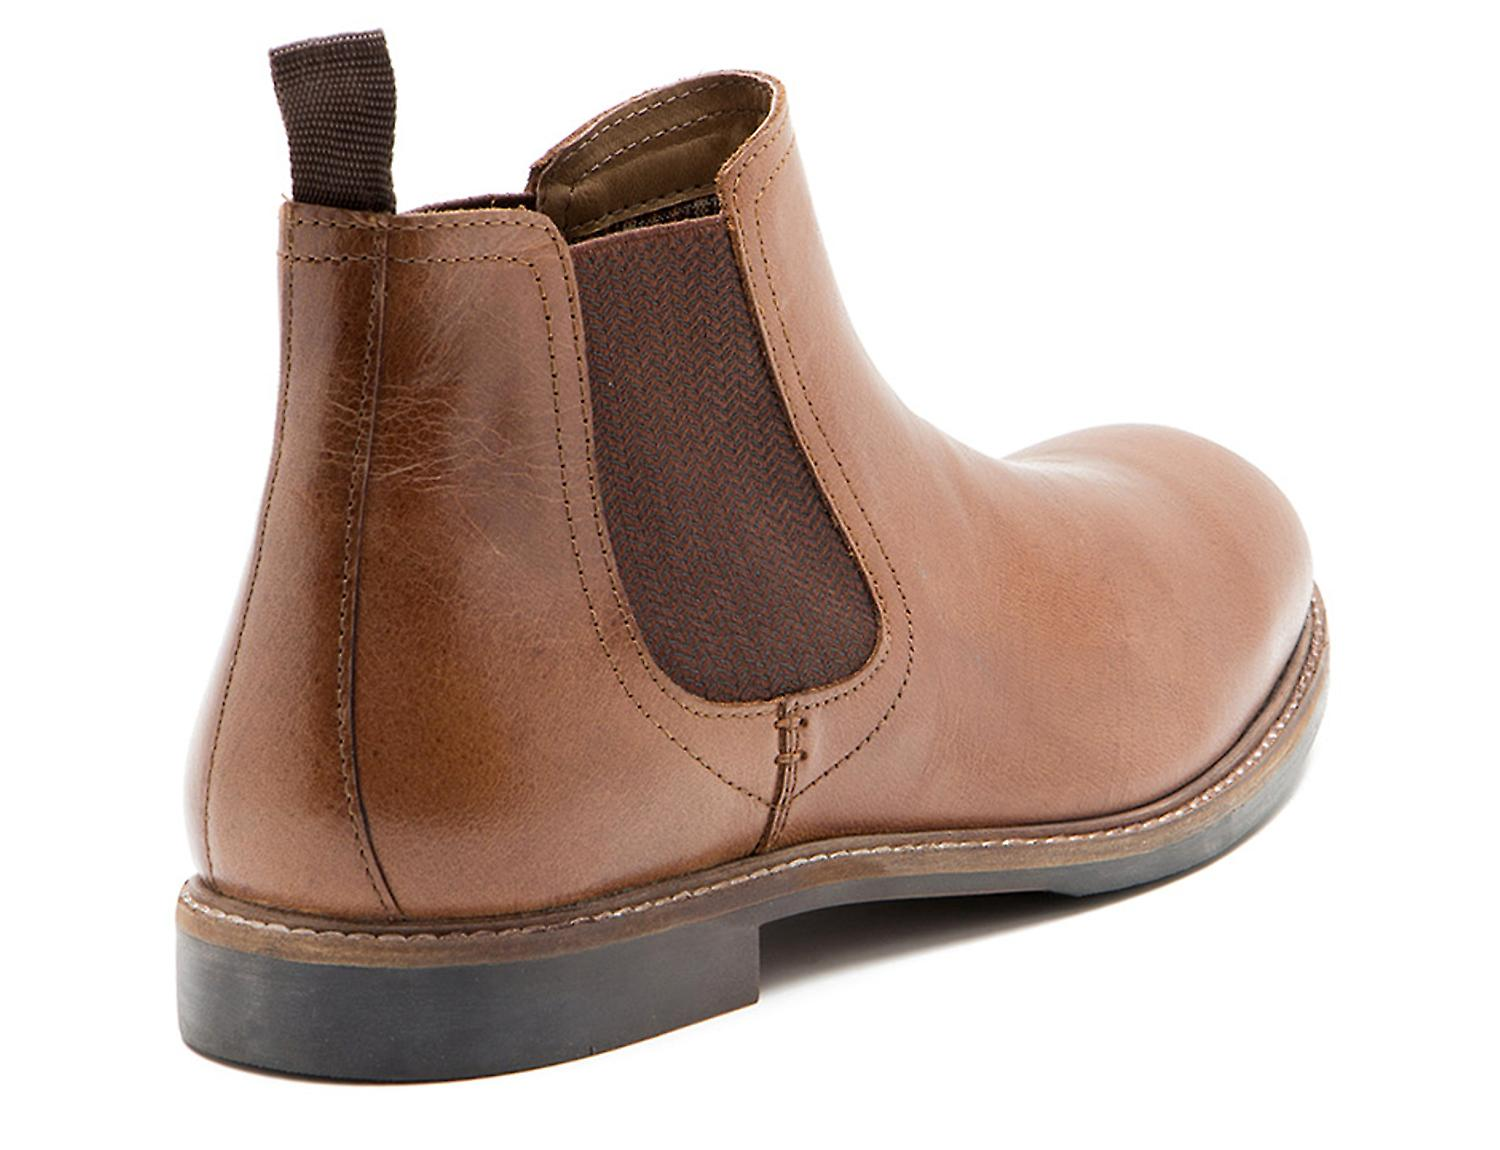 36a01766247 Red Tape Morley Tan Leather Mens Chelsea Boots